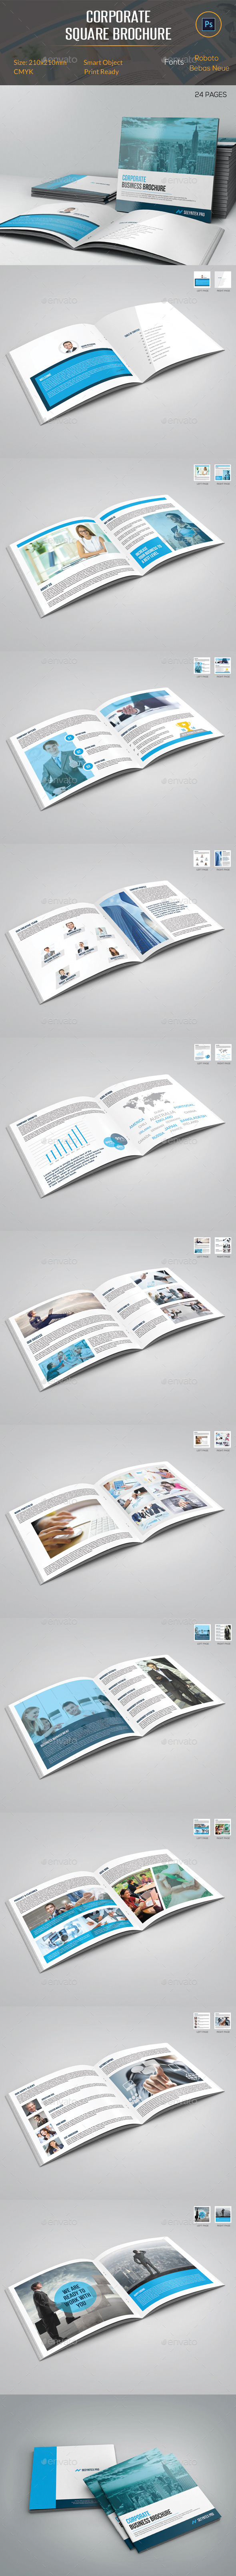 GraphicRiver Corporate Square Brochure 11201745